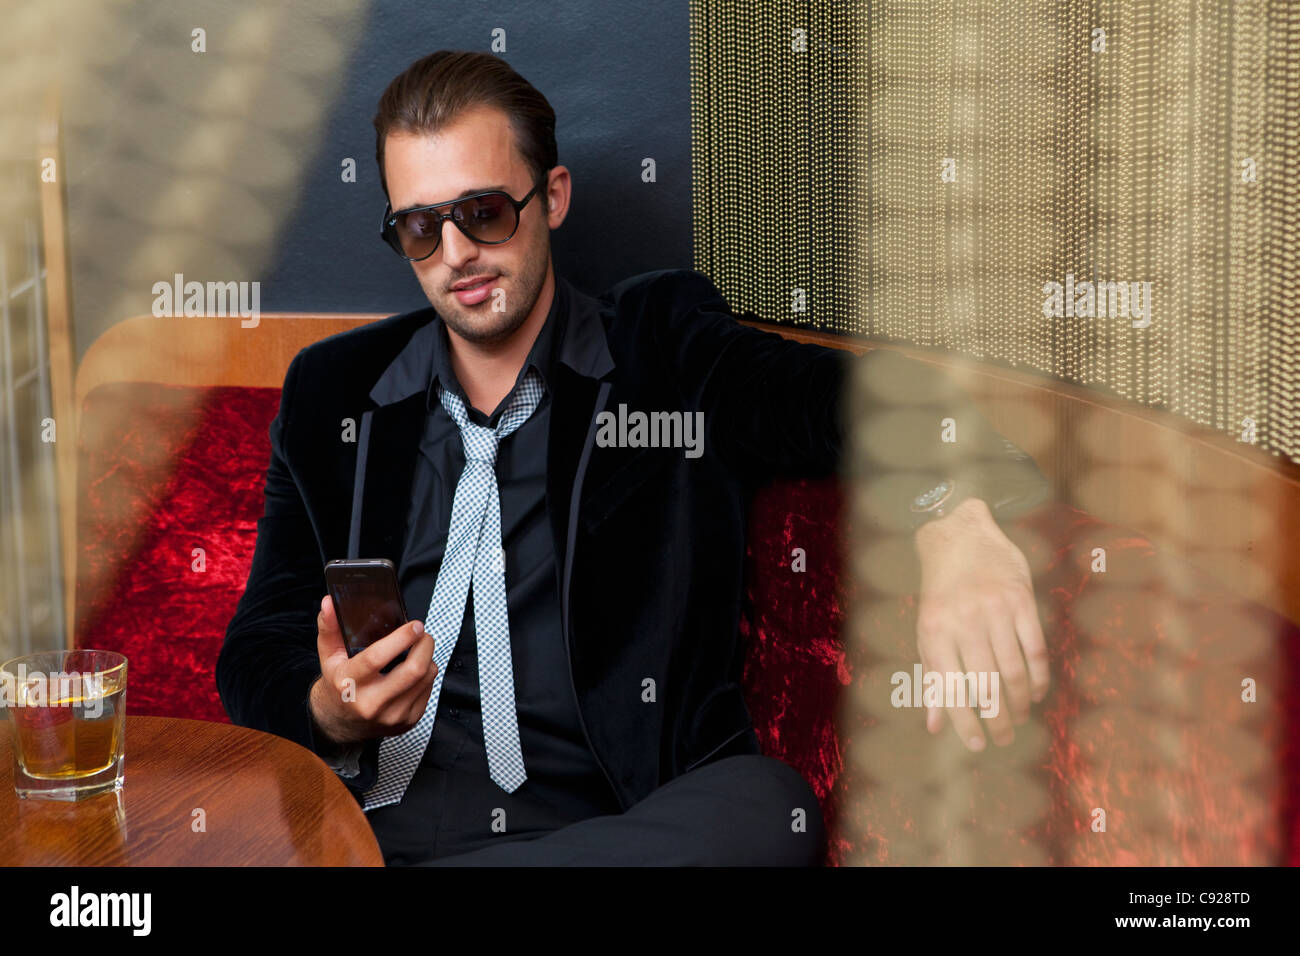 Man using cell phone in bar - Stock Image